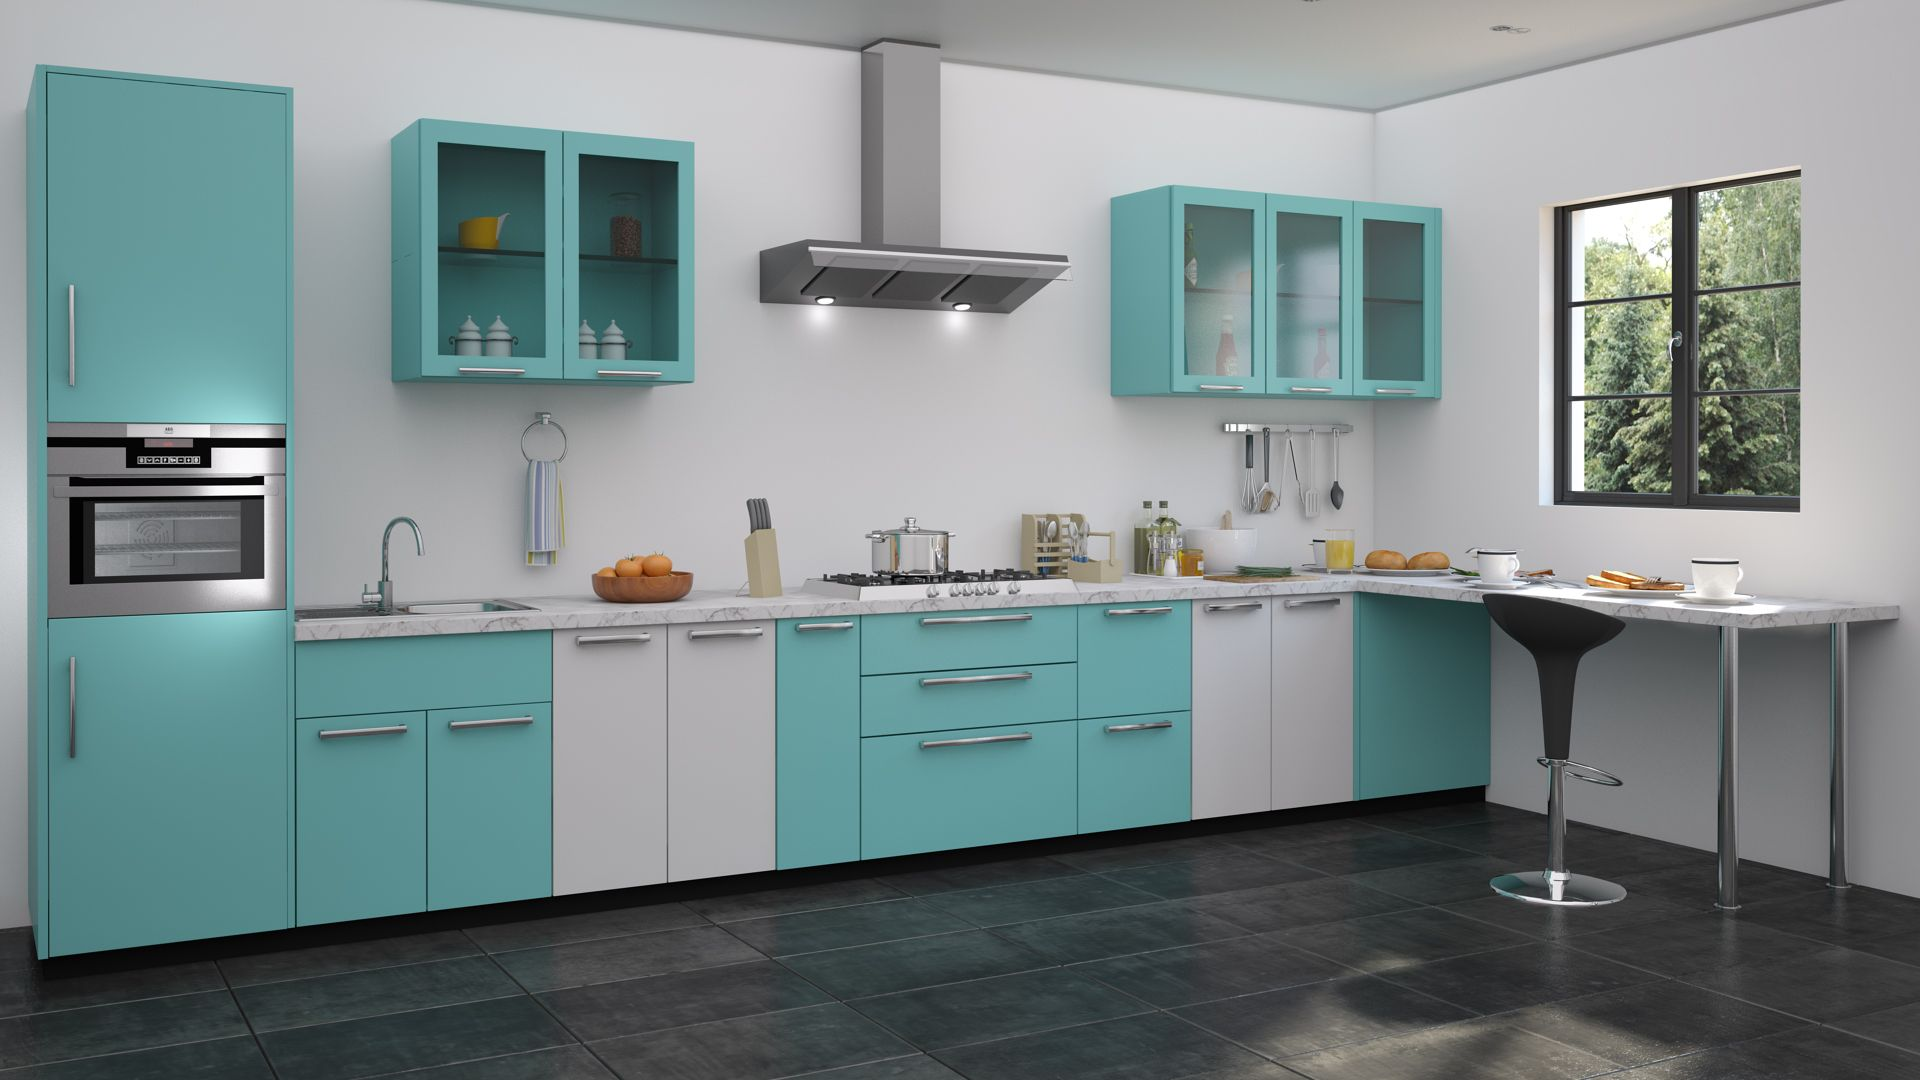 Get Modular Kitchen Prices Instantly Online Using Our Free Online Modular Kitchen Price Calculator Now Get Complimentary Interior Designing Services On